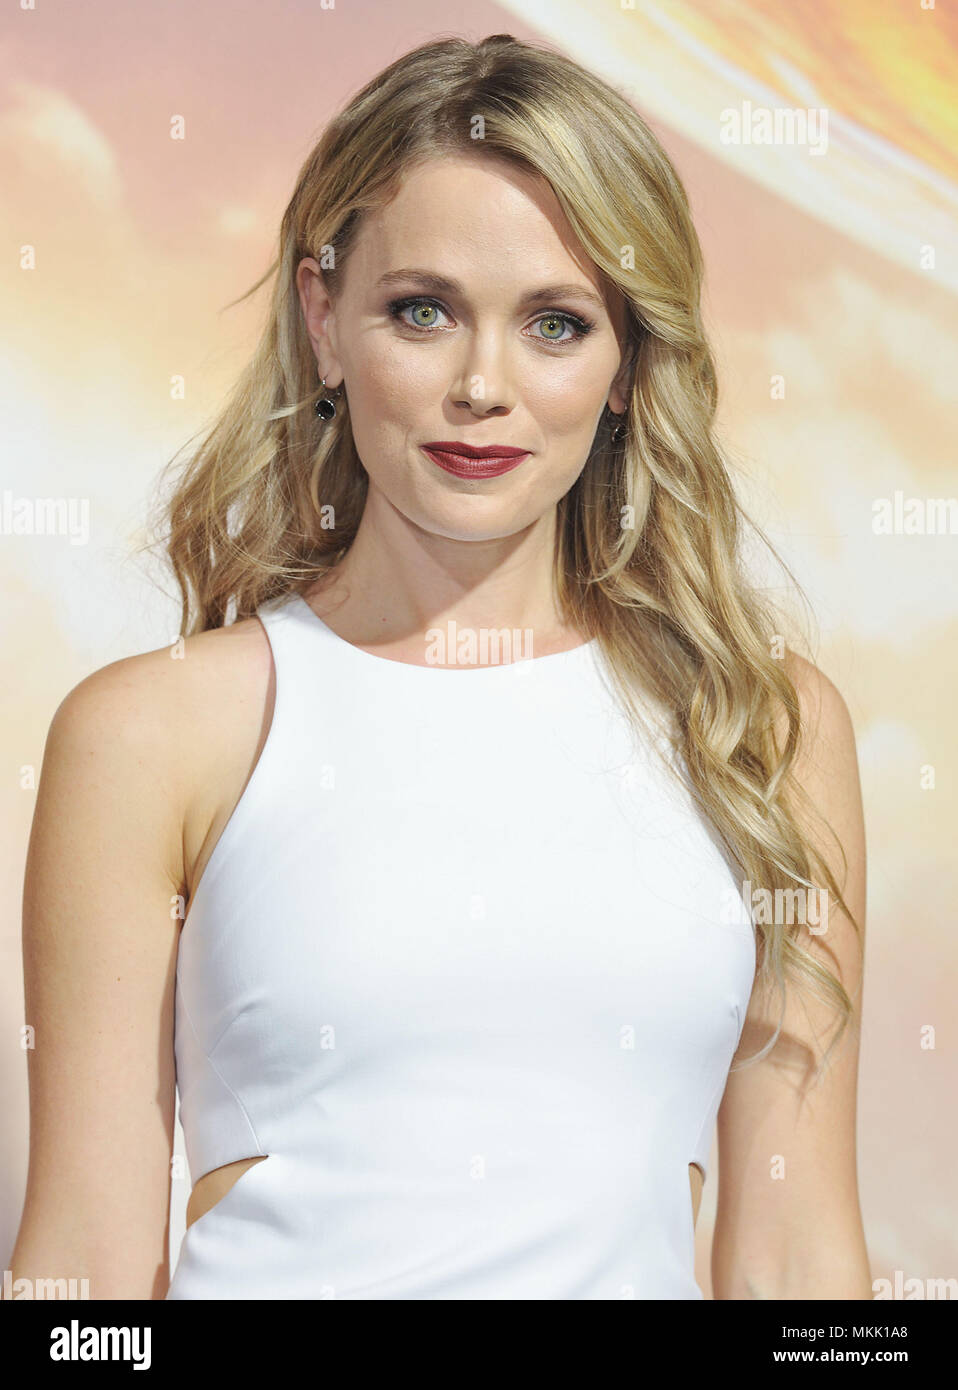 katia winter arena